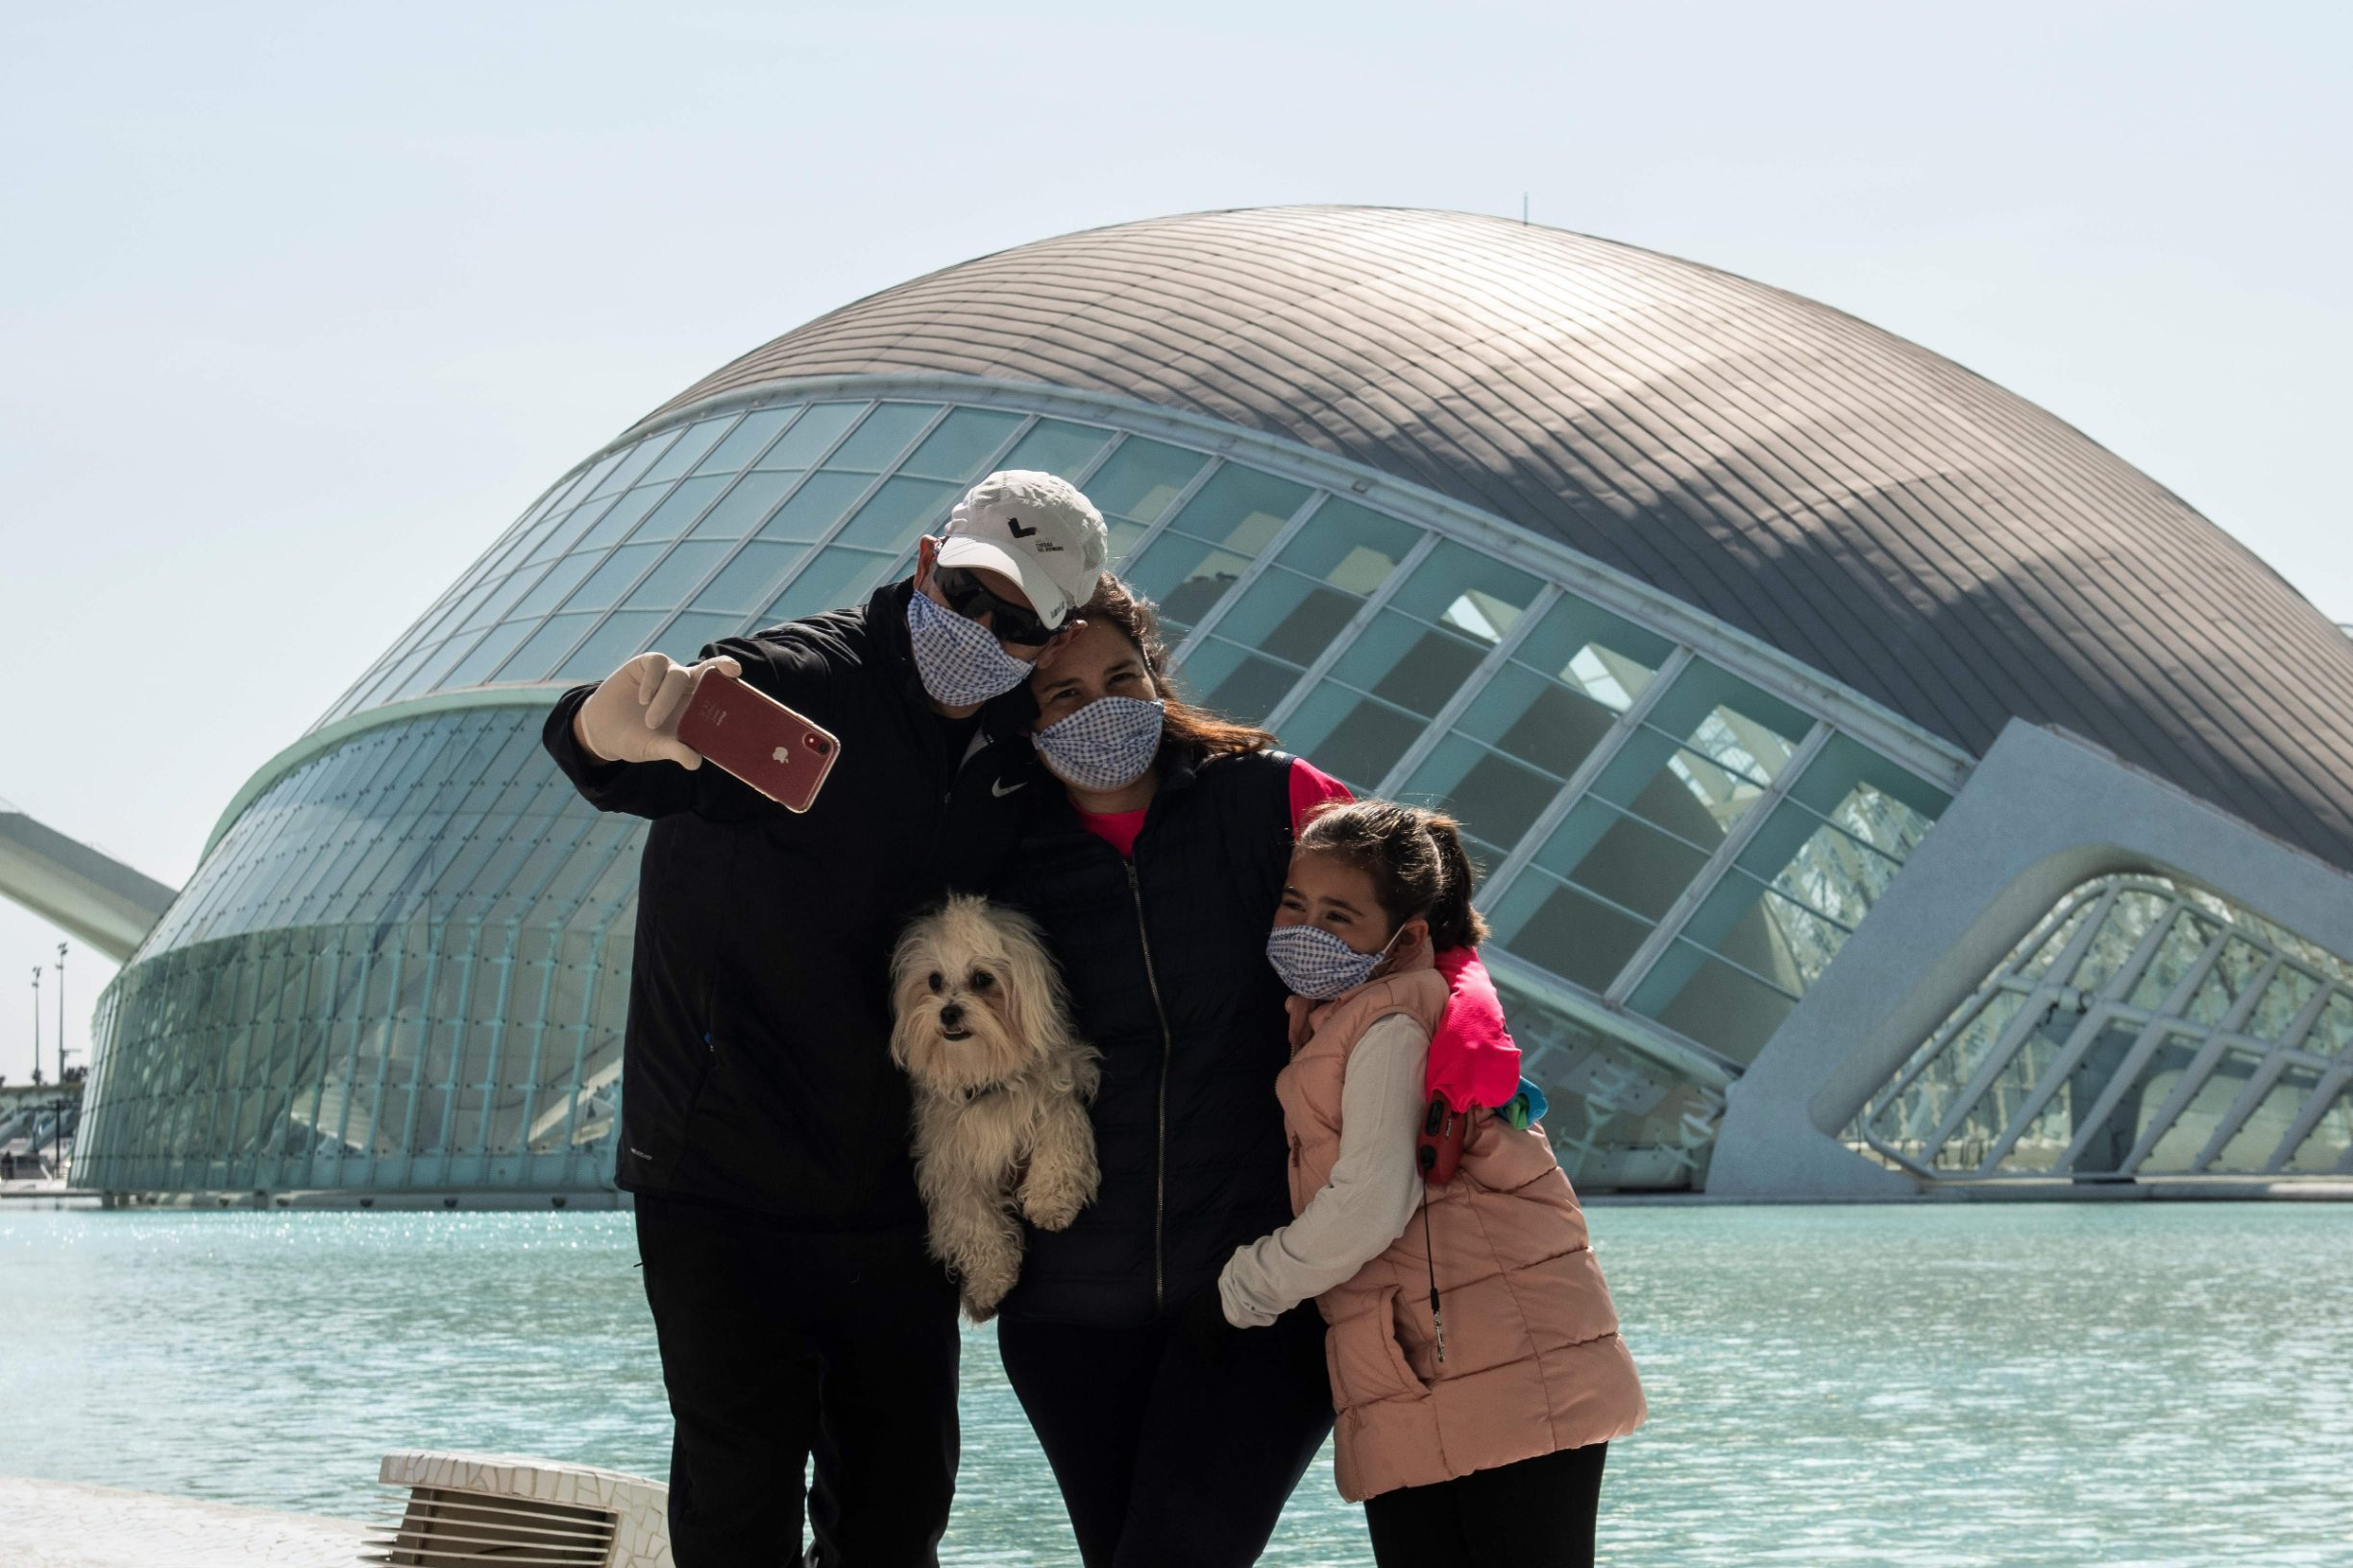 A family wearing protective masks take a selfie at the City of Arts and Sciences in Valencia on March 14, 2020 as Spain confirmed more than 1,500 new cases of coronavirus between Friday and Saturday raising its total to 5,753 cases, the second-highest number in Europe after Italy.